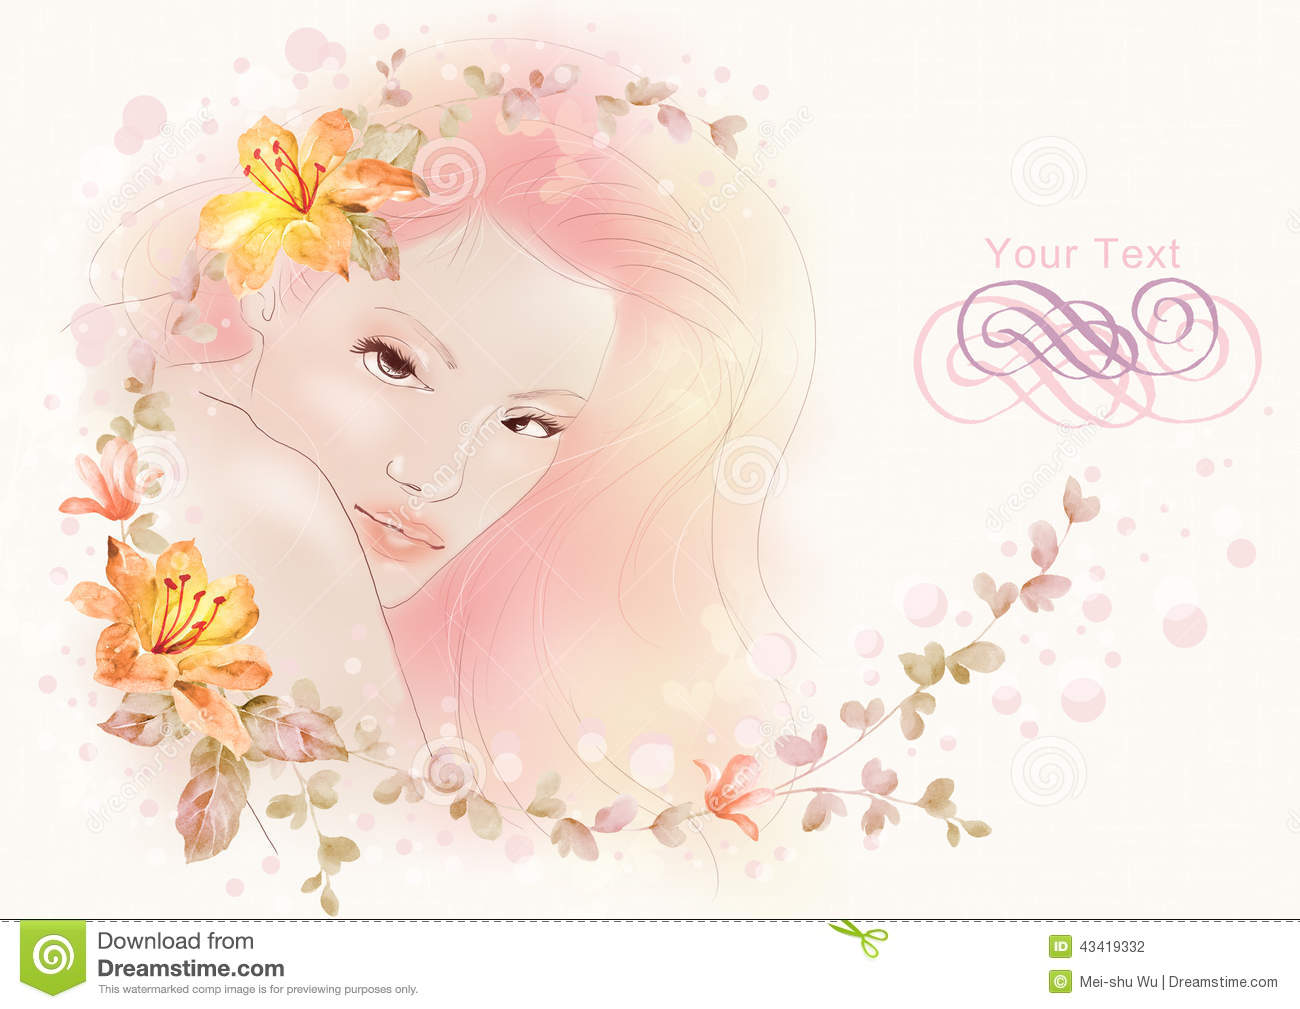 Watercolor Illustration Flowers And Portrait Of Beautiful Woman In Simple Background Stock Illustration Illustration Of Flower Elegant 43419332,Fractal Design Meshify C Build